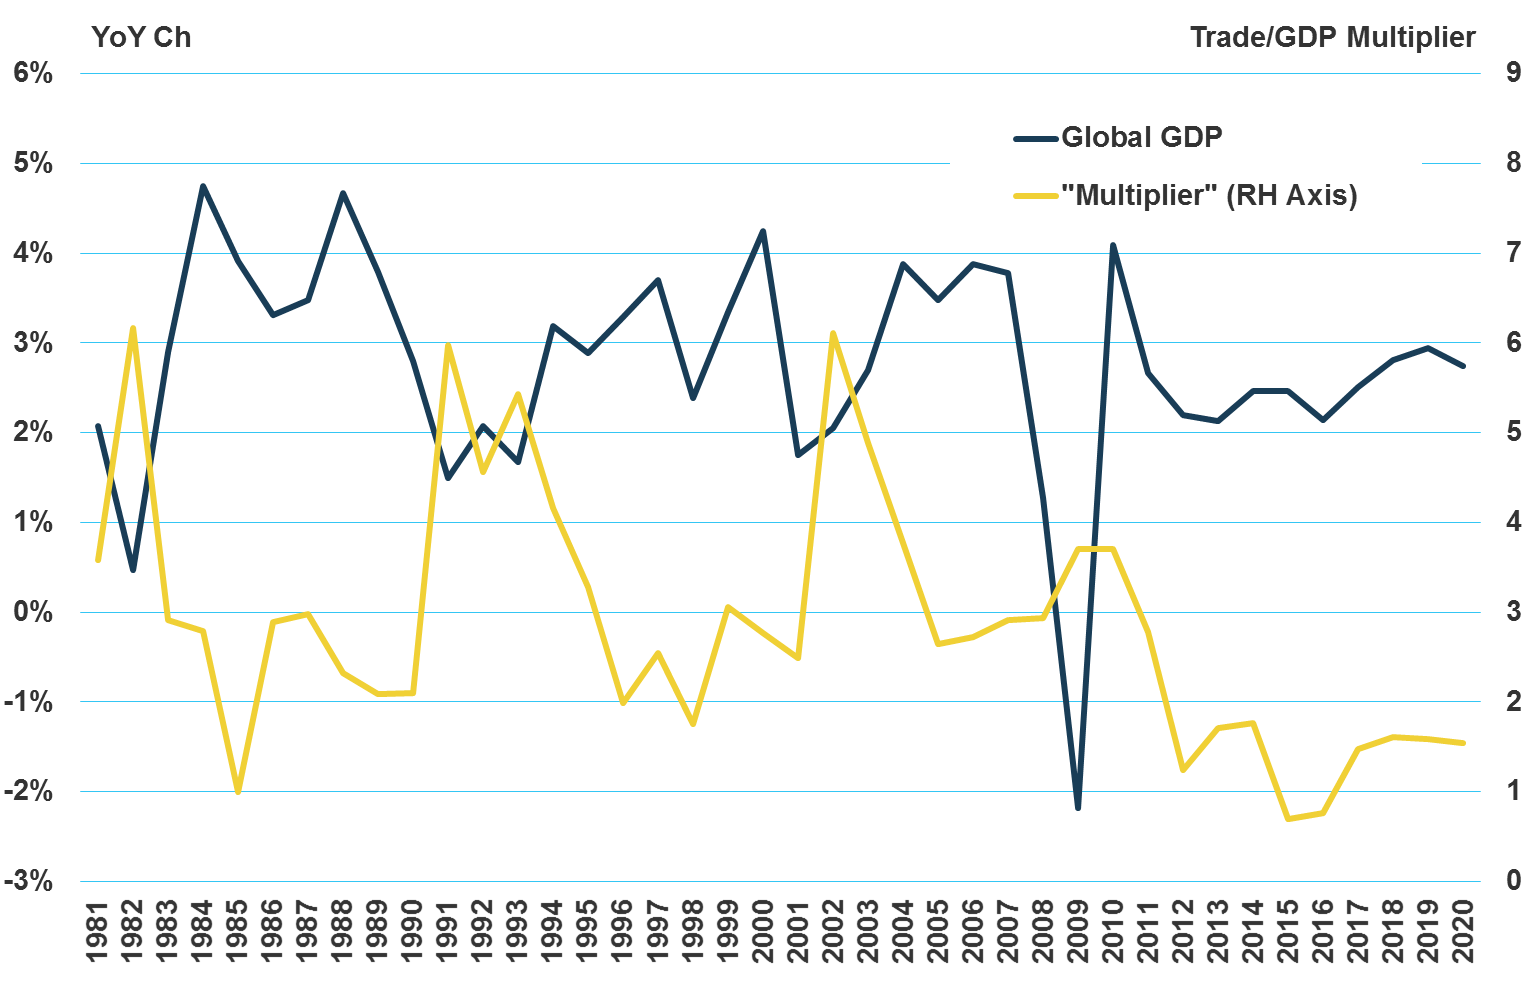 Gdp and container growth a relationship at an end the loadstar chart 1 the tradegdp multiplier has not been at a steady nvjuhfo Choice Image